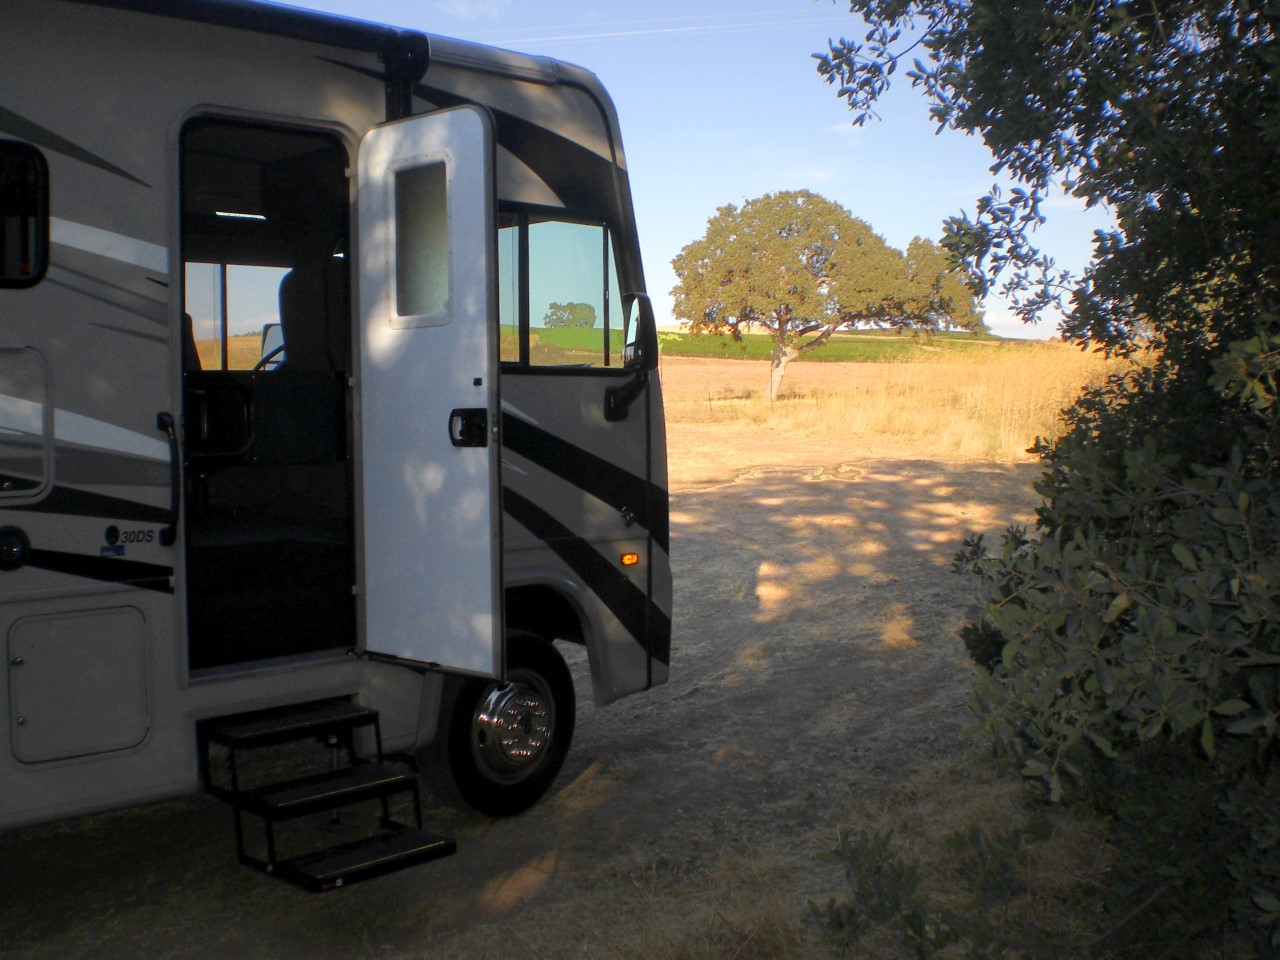 Tobin James Cellars - Harvest Host RV camping area